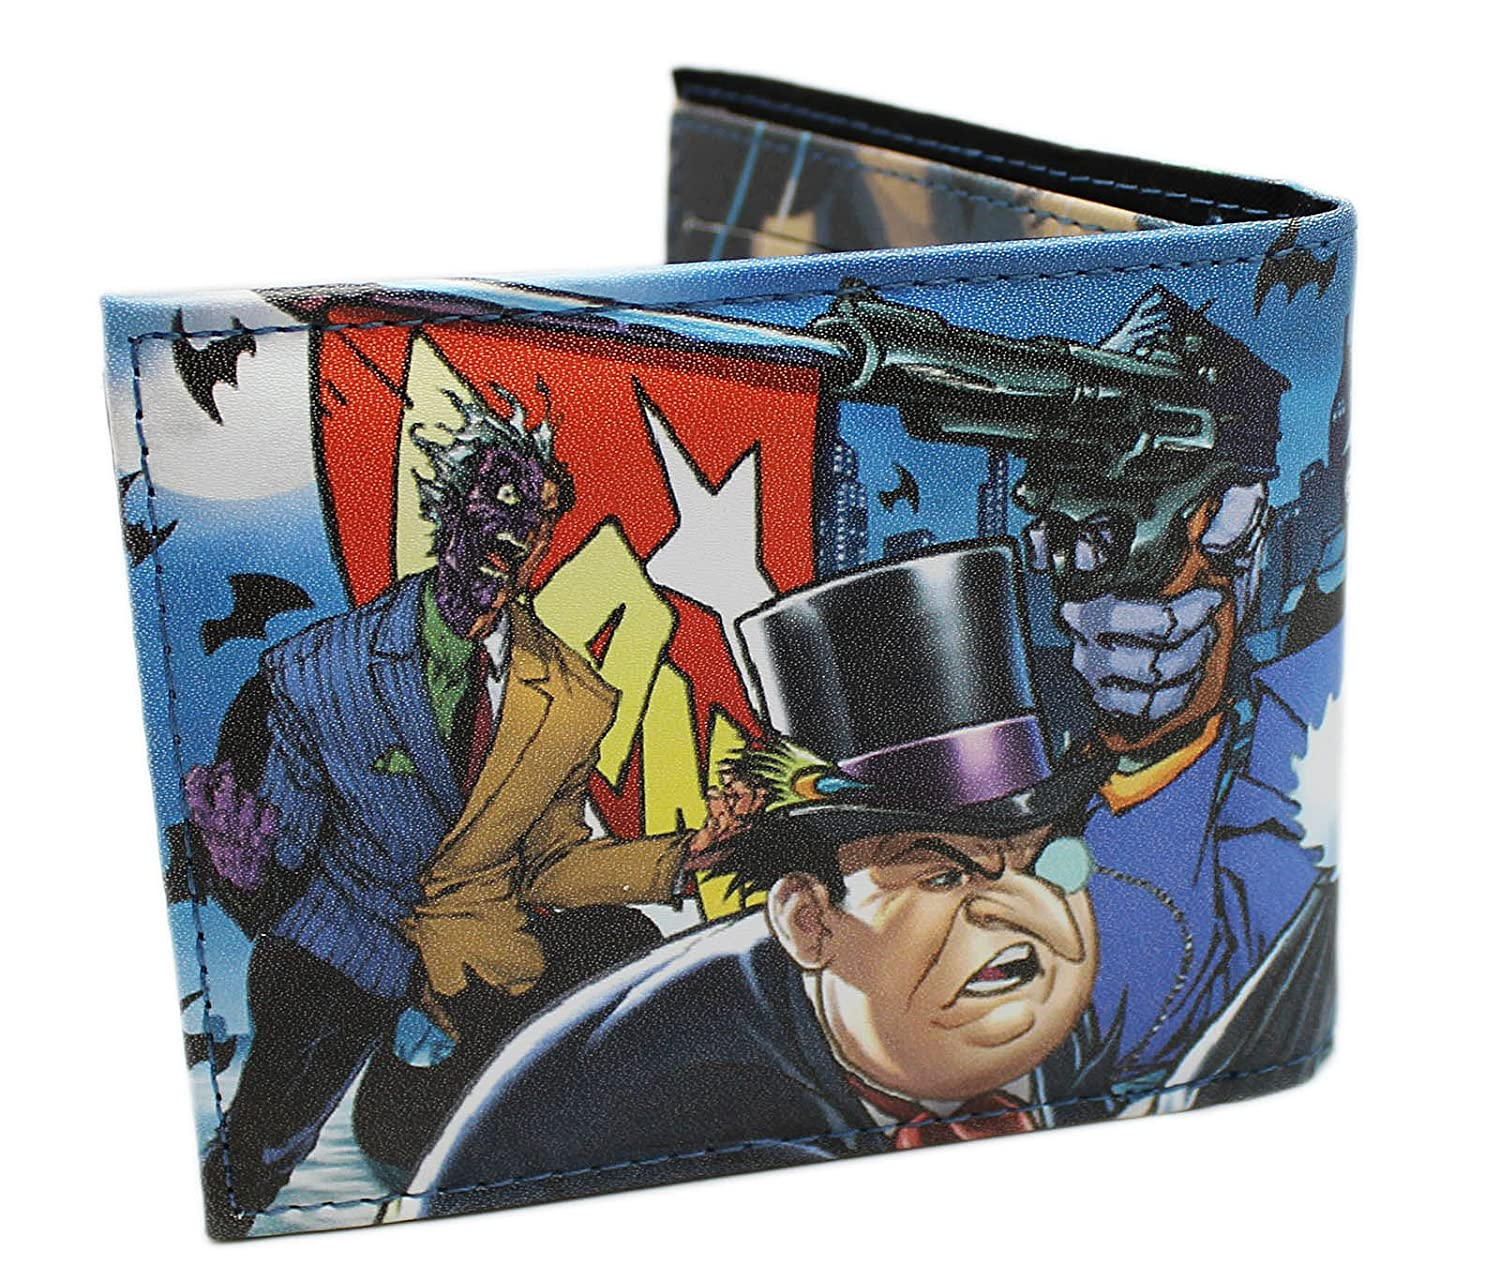 Amazon.com: DC Comics Villanos cartera: Clothing